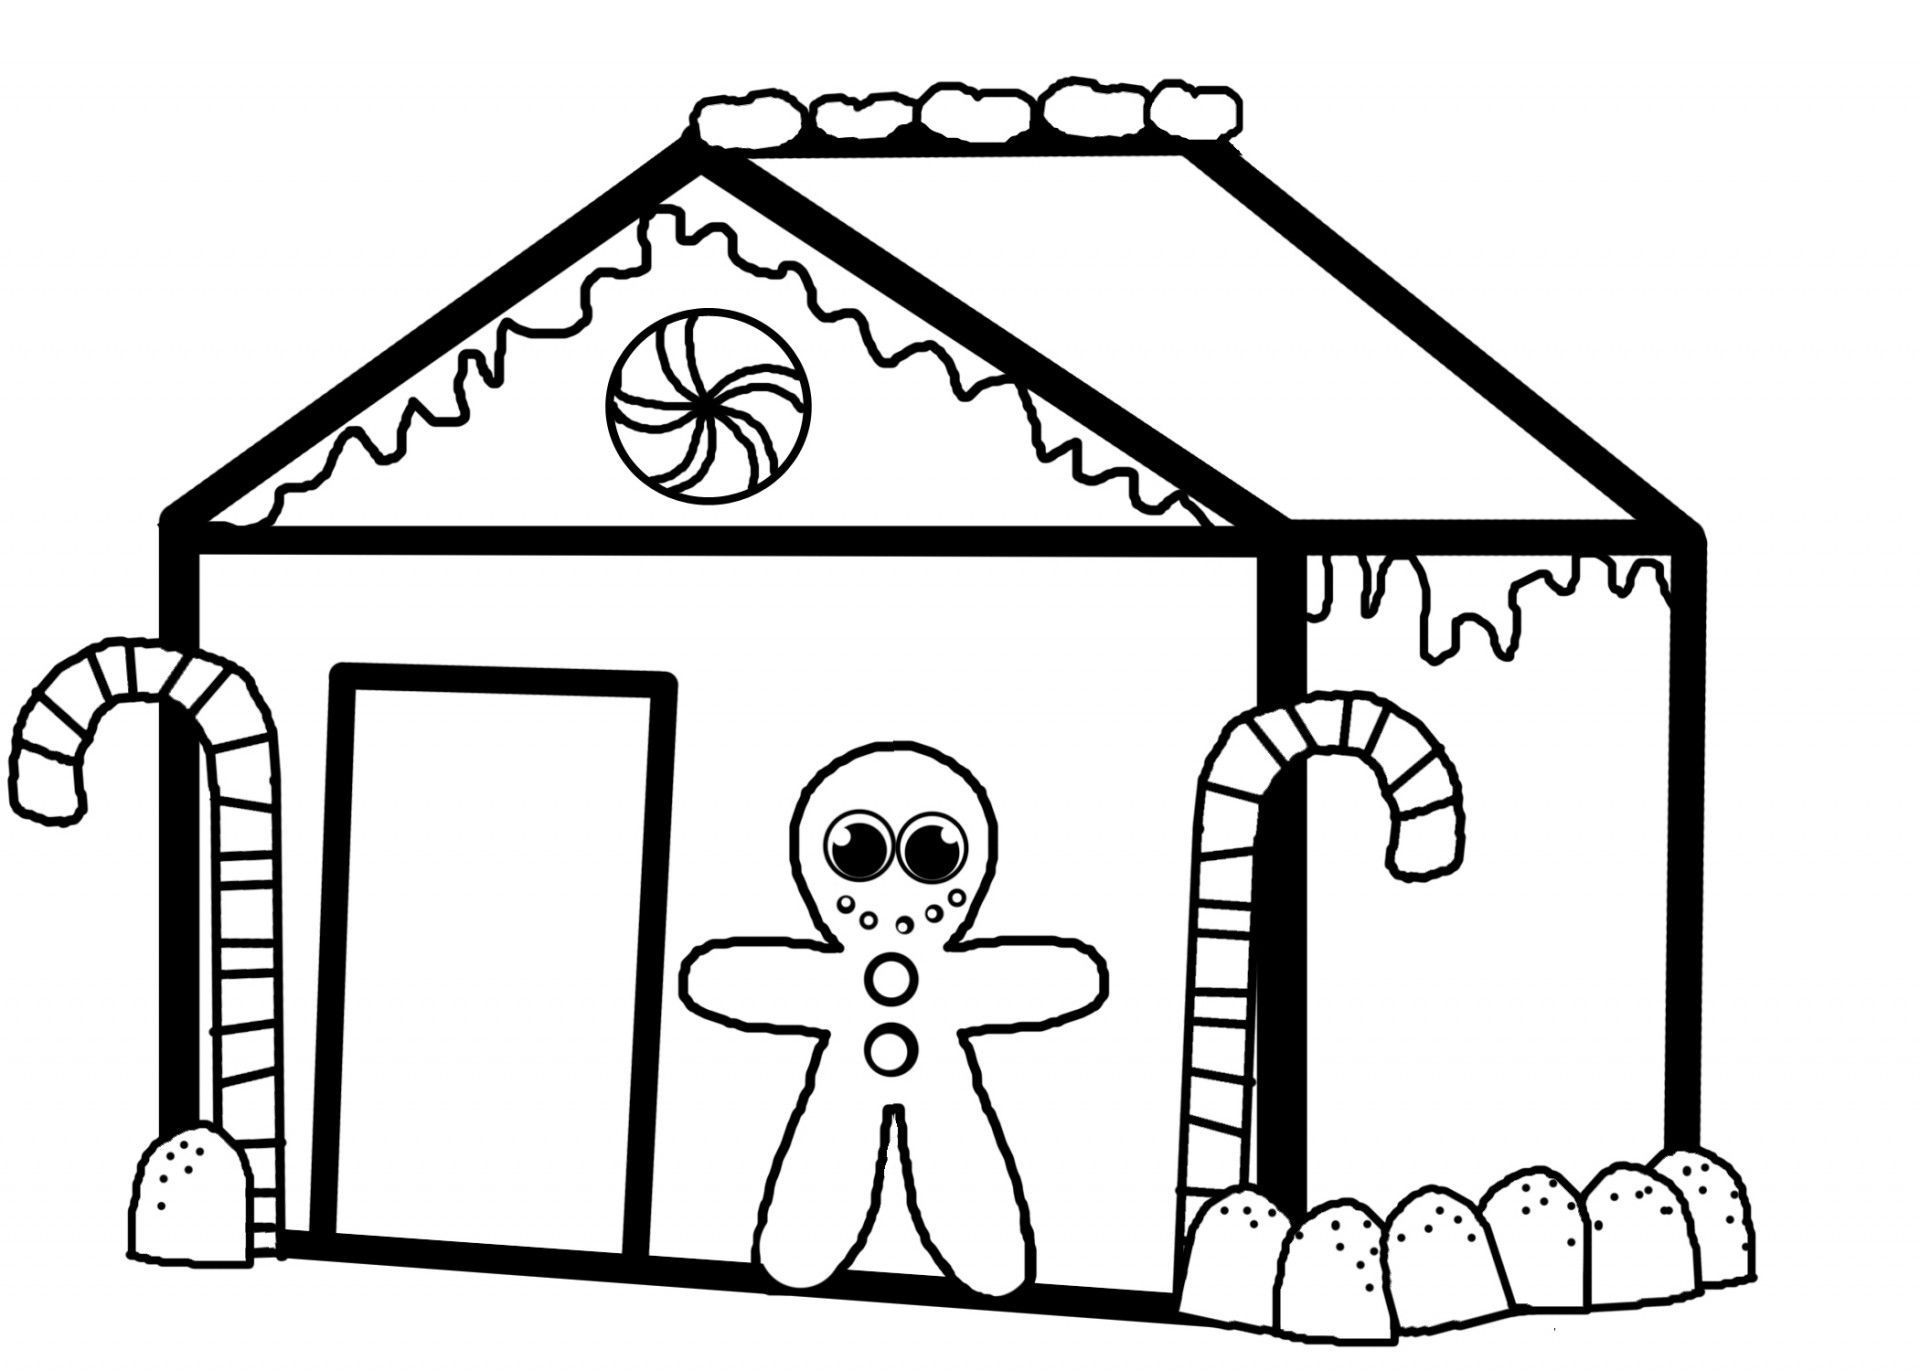 gingerbread house color page gingerbread house coloring pages coloring pages to gingerbread house page color